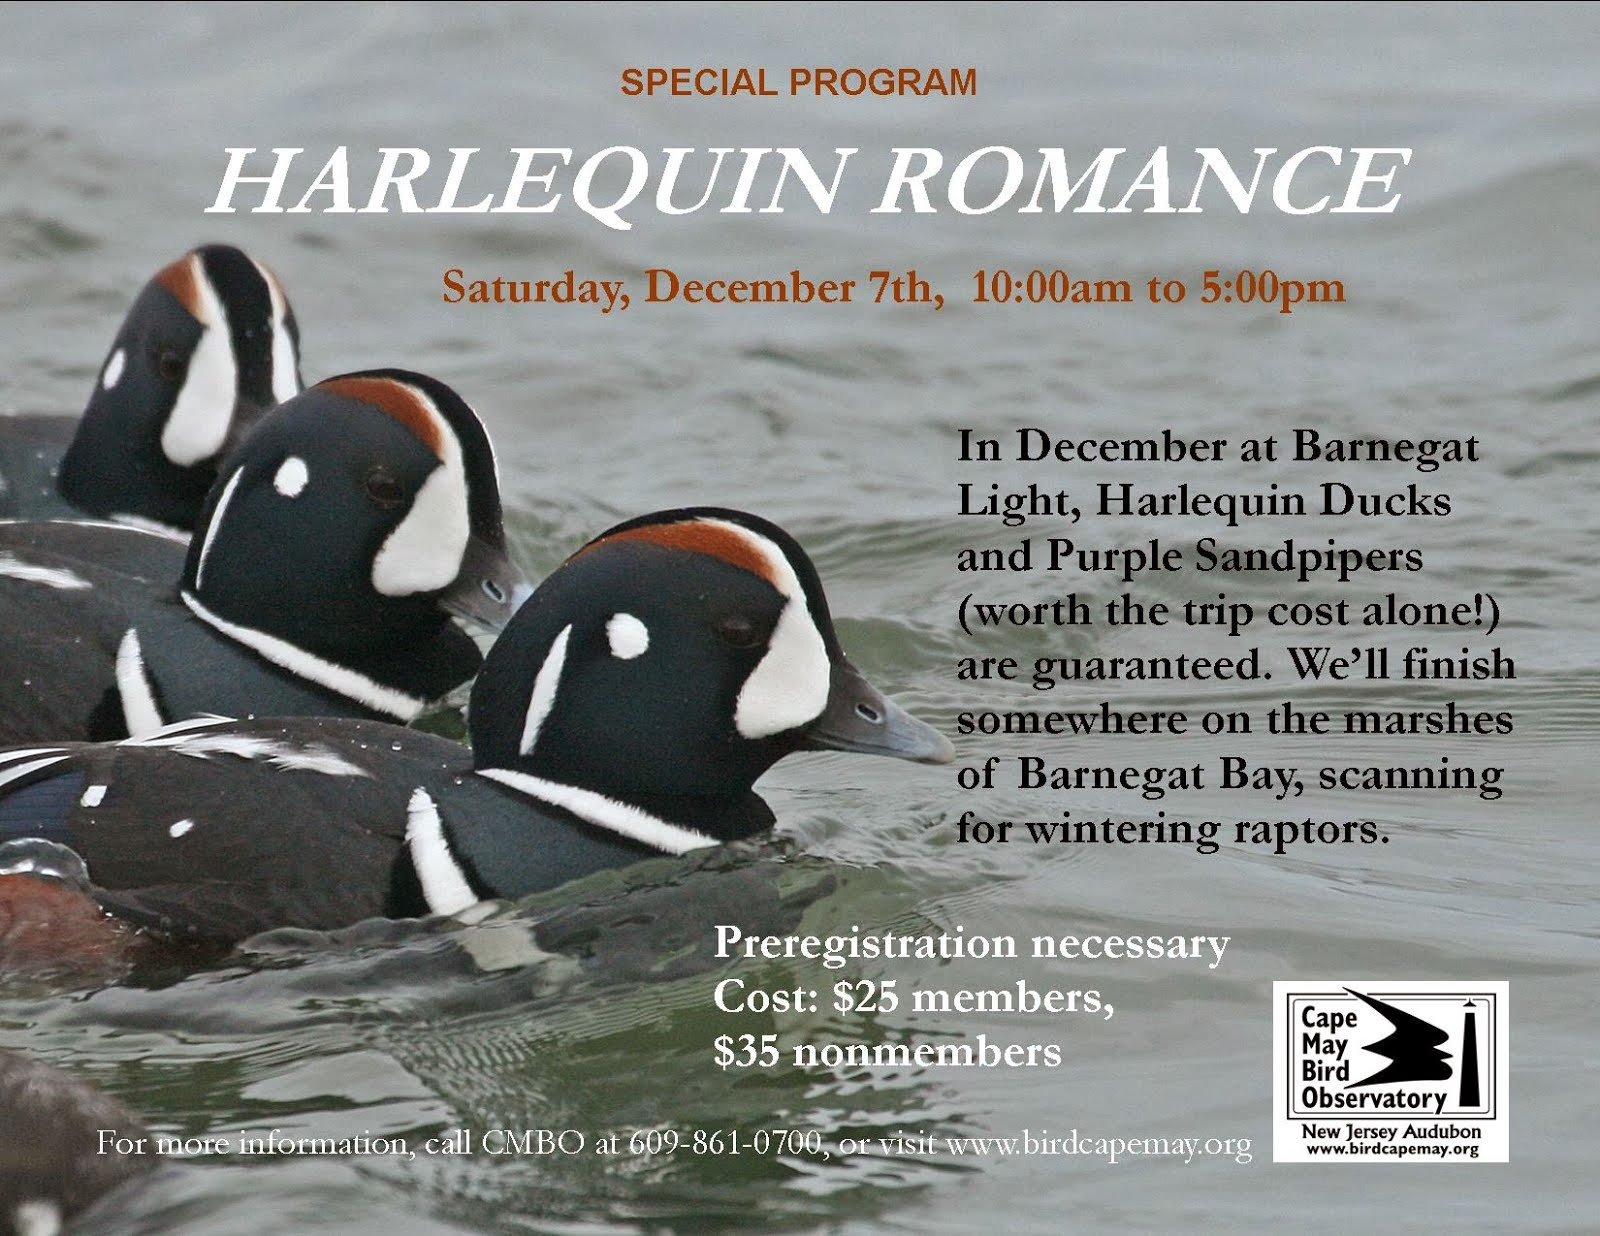 Harlequin Romance, December 7th